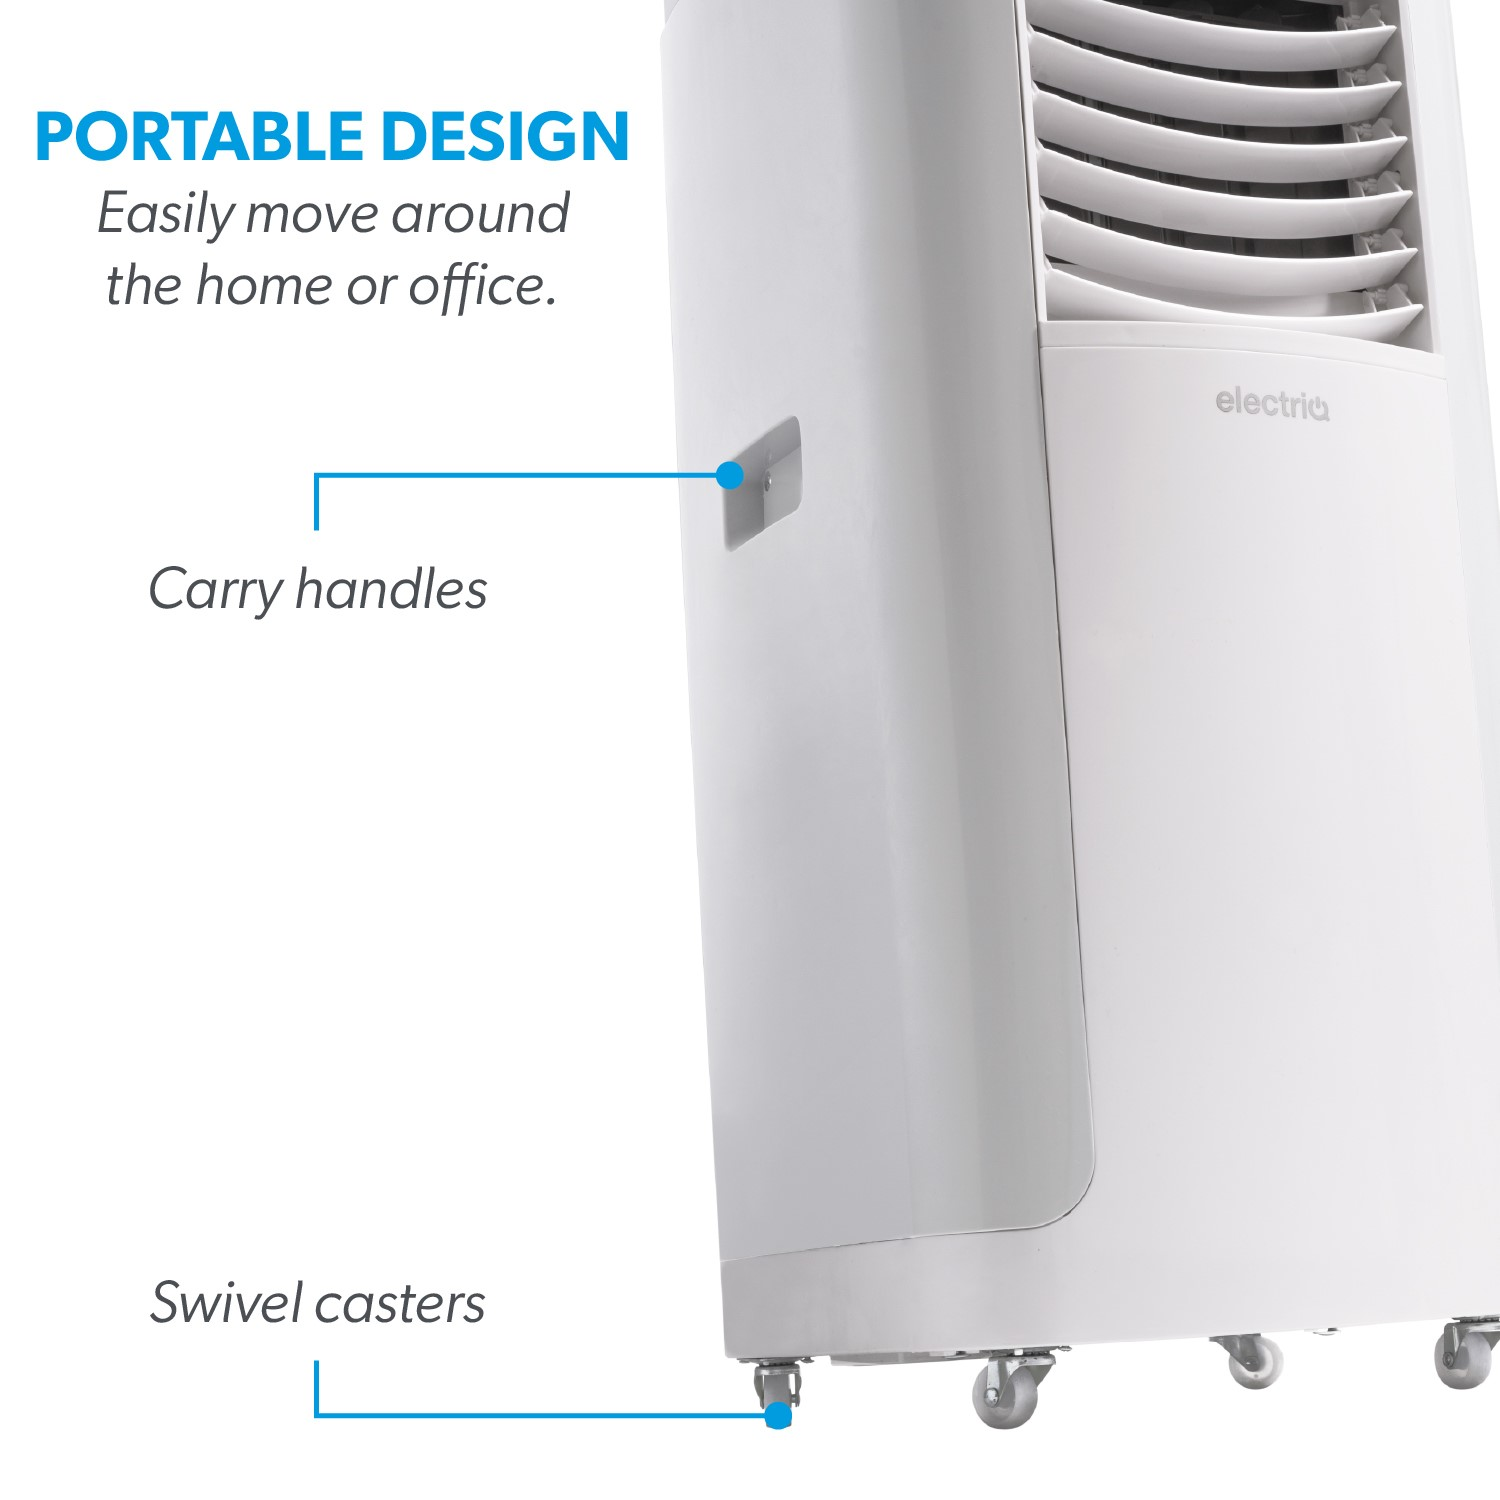 electriQ 12000 BTU SMART WIFI App-controllable Portable Air Conditioner  with heatpump for rooms up to 30 sqm - Alexa Enabled